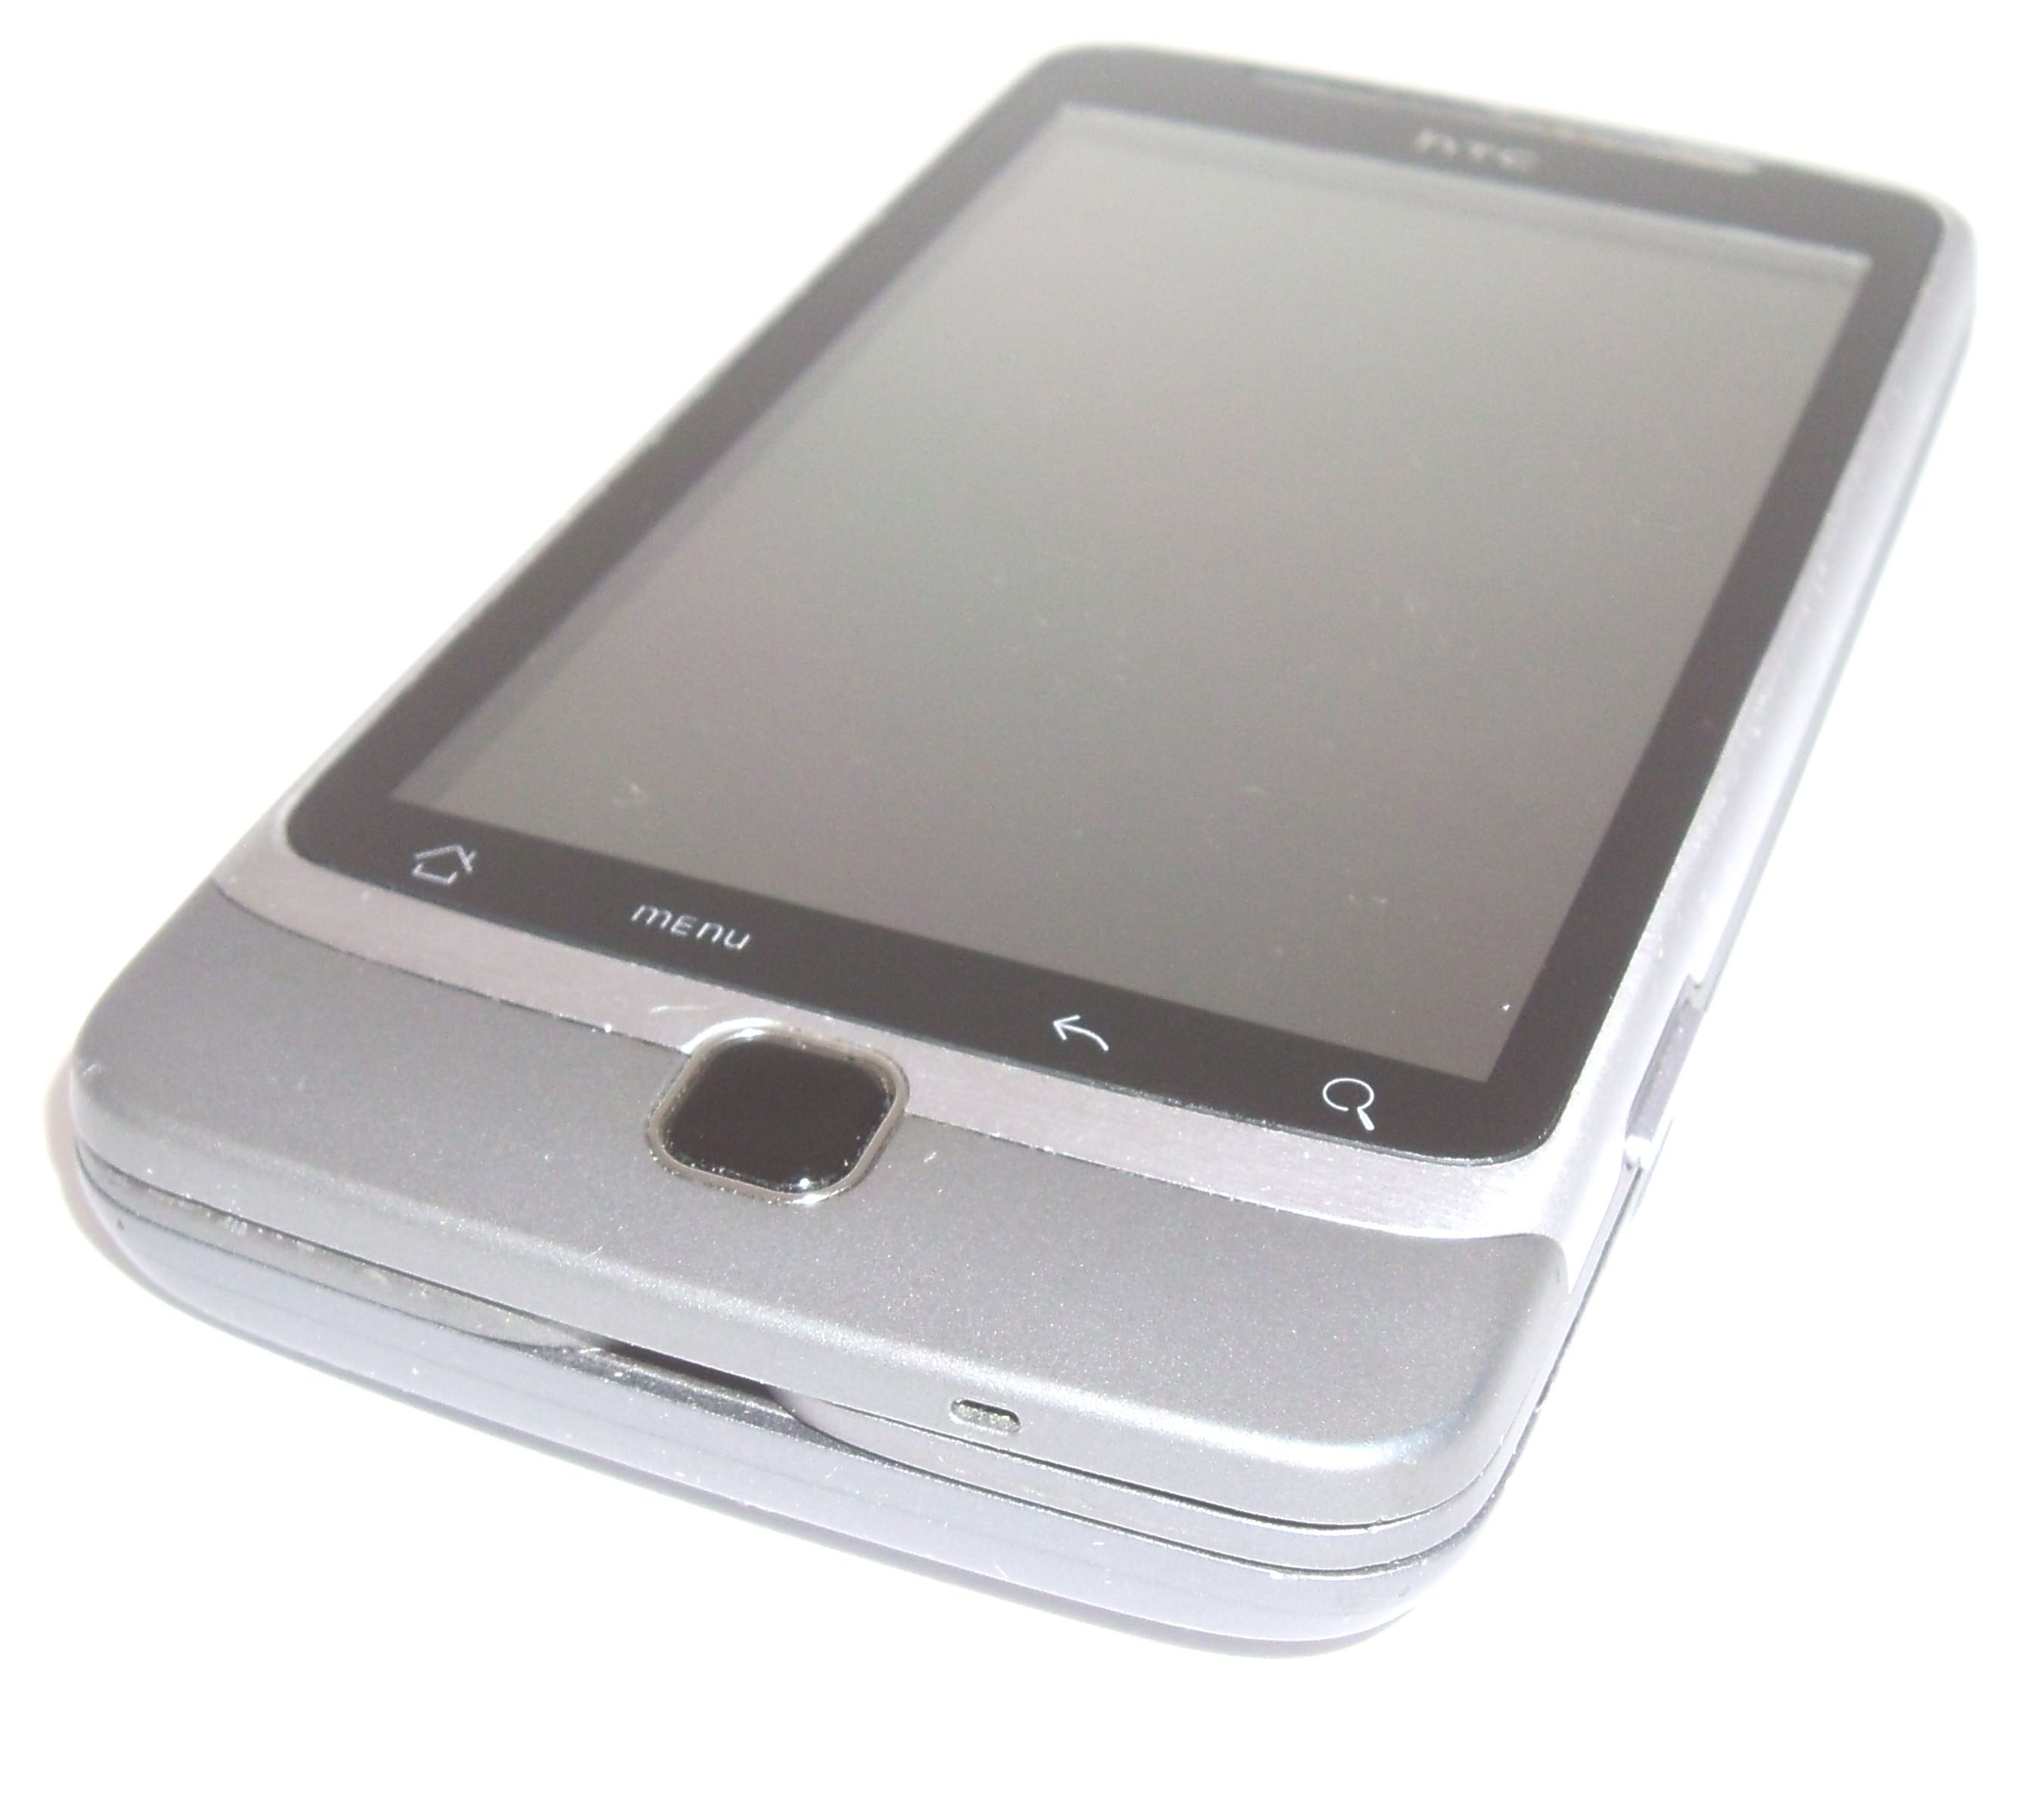 LIKE NEW Unlocked HTC G2 Vison Android Smartphone   Property